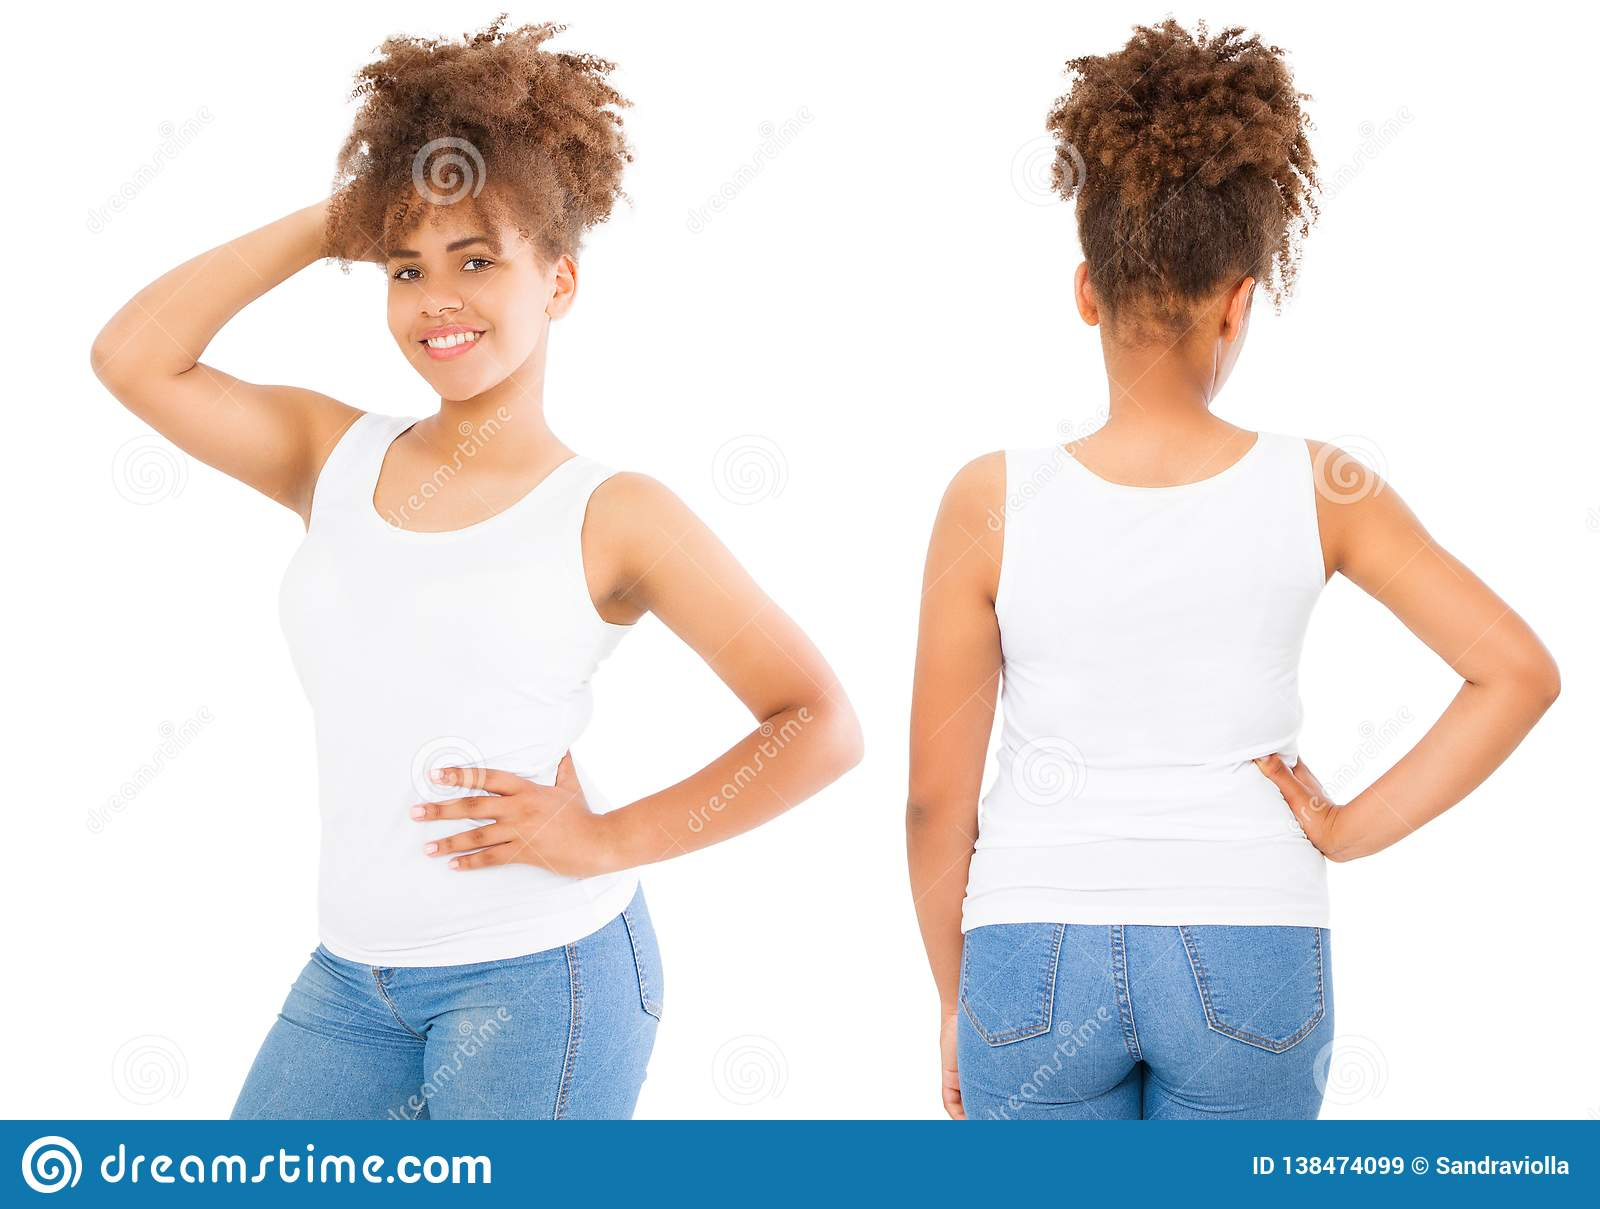 Shirts set. Summer t shirt design and close up of young afro american woman in blank template white t-shirt. Mock up. Copy space.